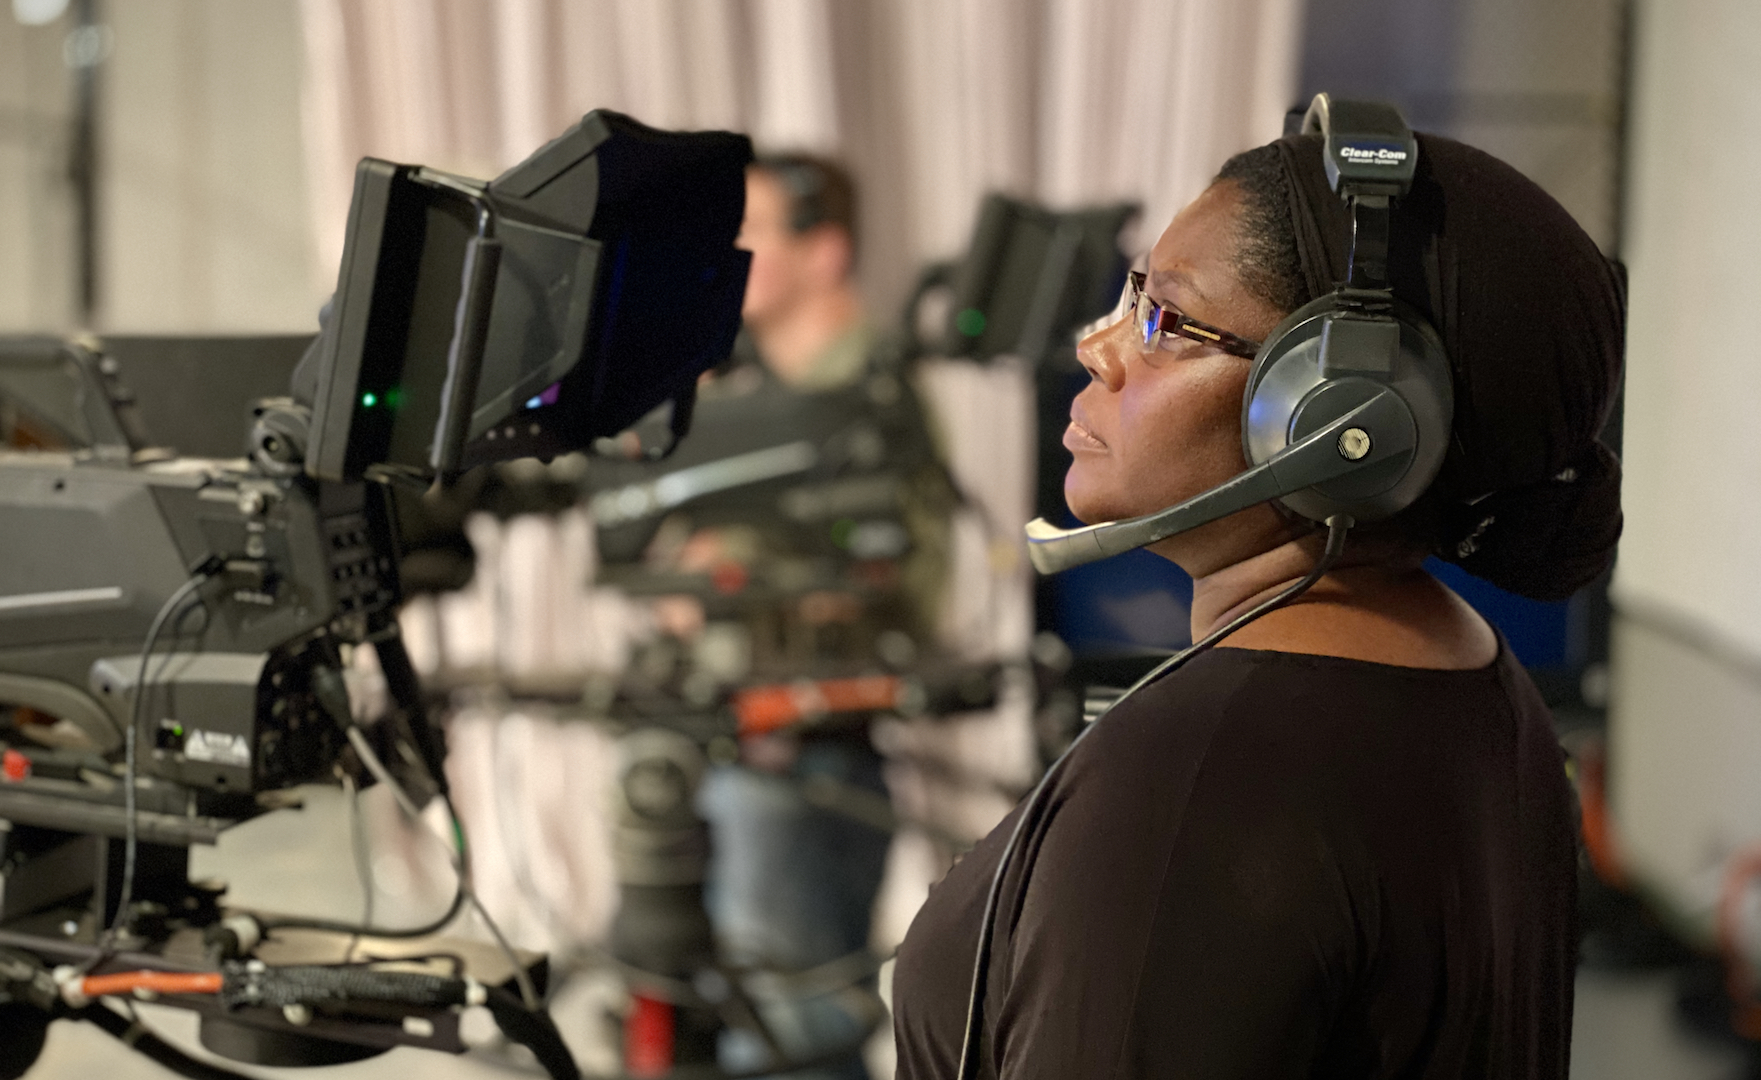 A woman standing behind a camera.